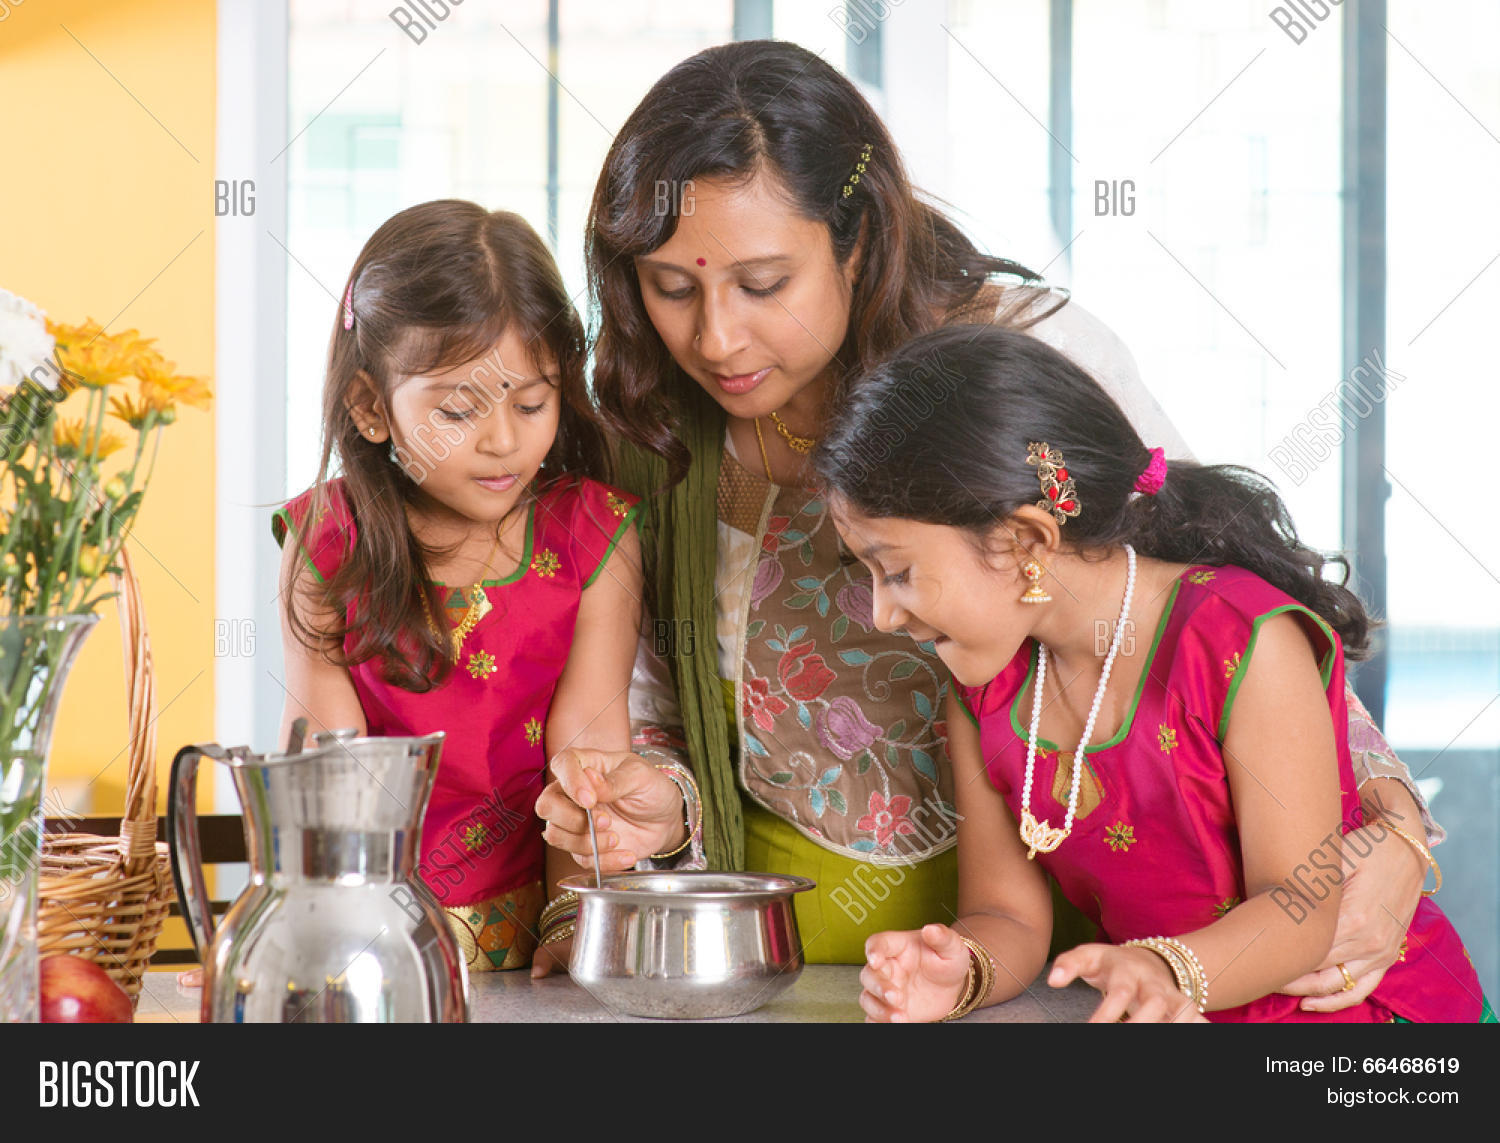 Family cooking kitchen - Asian Family Cooking Food Together At Home Indian Mother And Children Preparing Meal In Kitchen